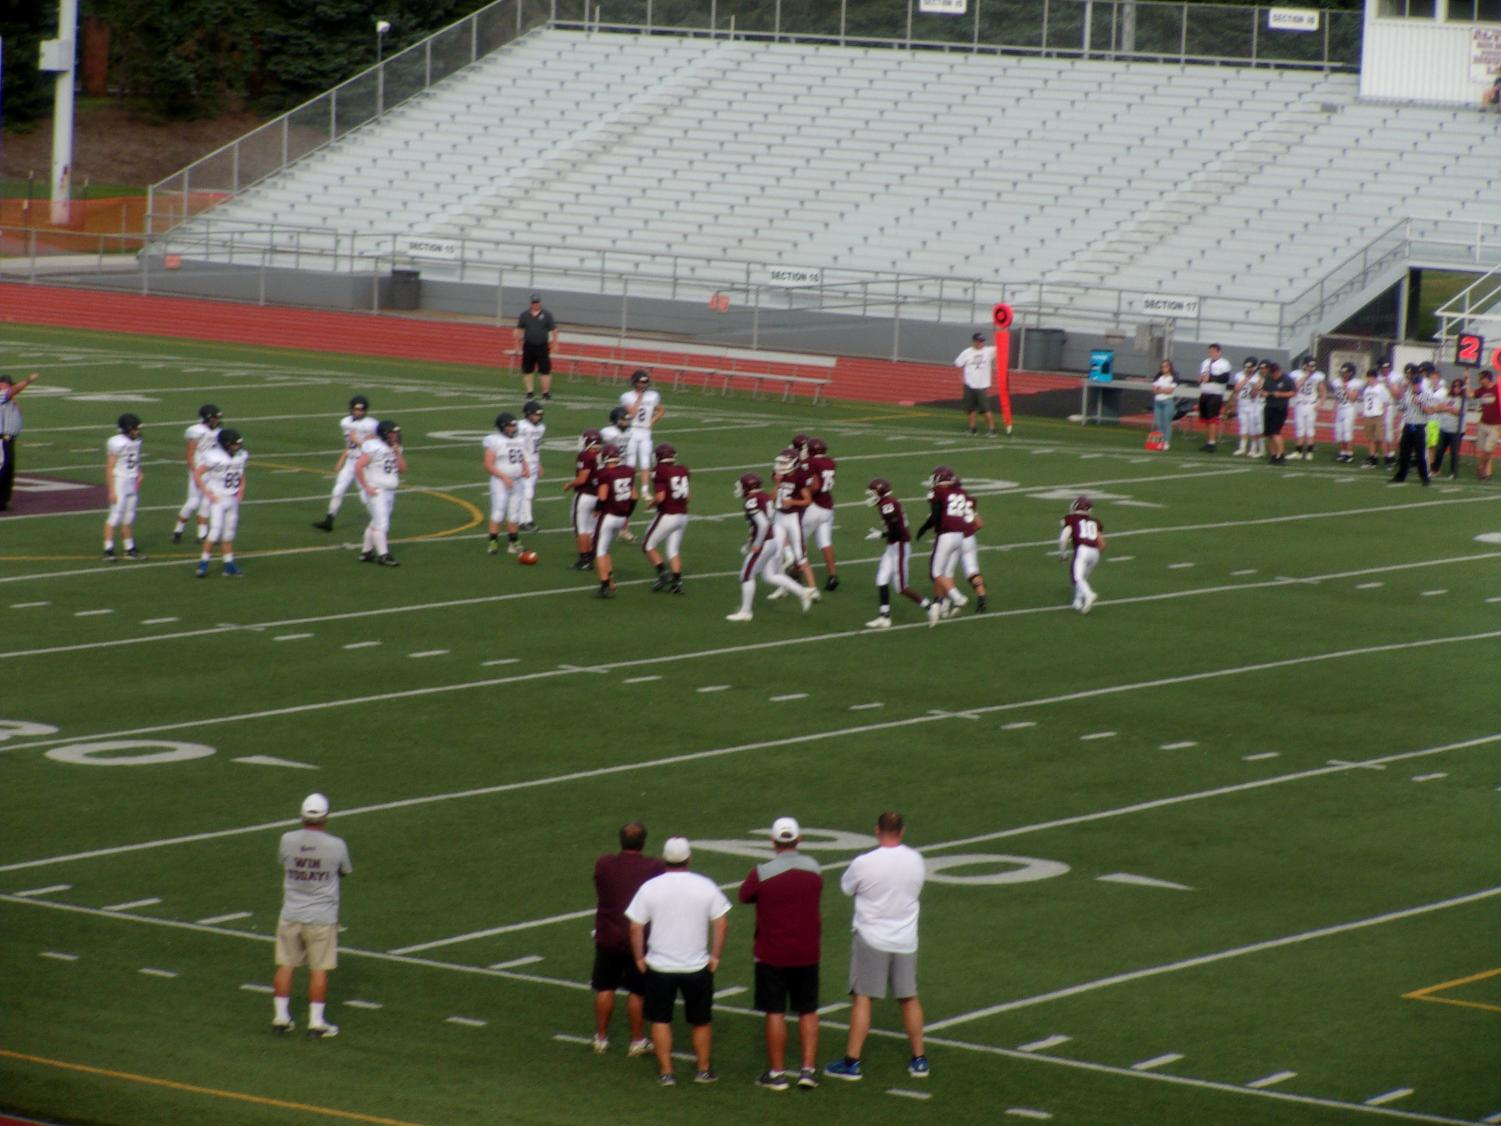 Getting Started  The maroon football team plays in a game.